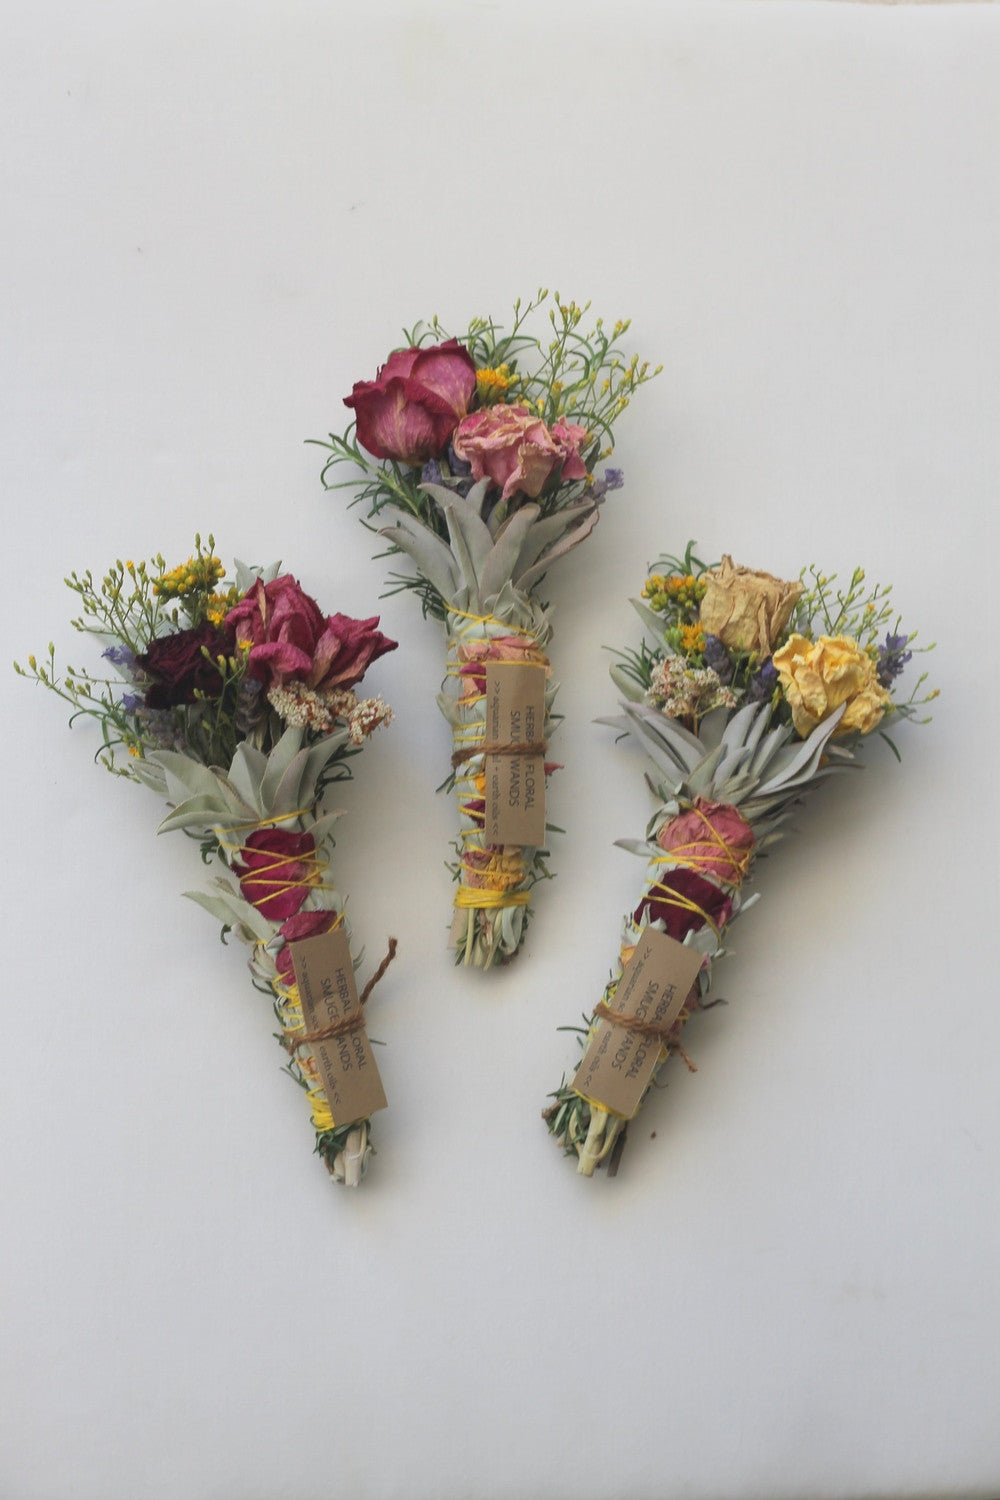 HERBAL FLORAL CEREMONIAL SMUDGE WAND